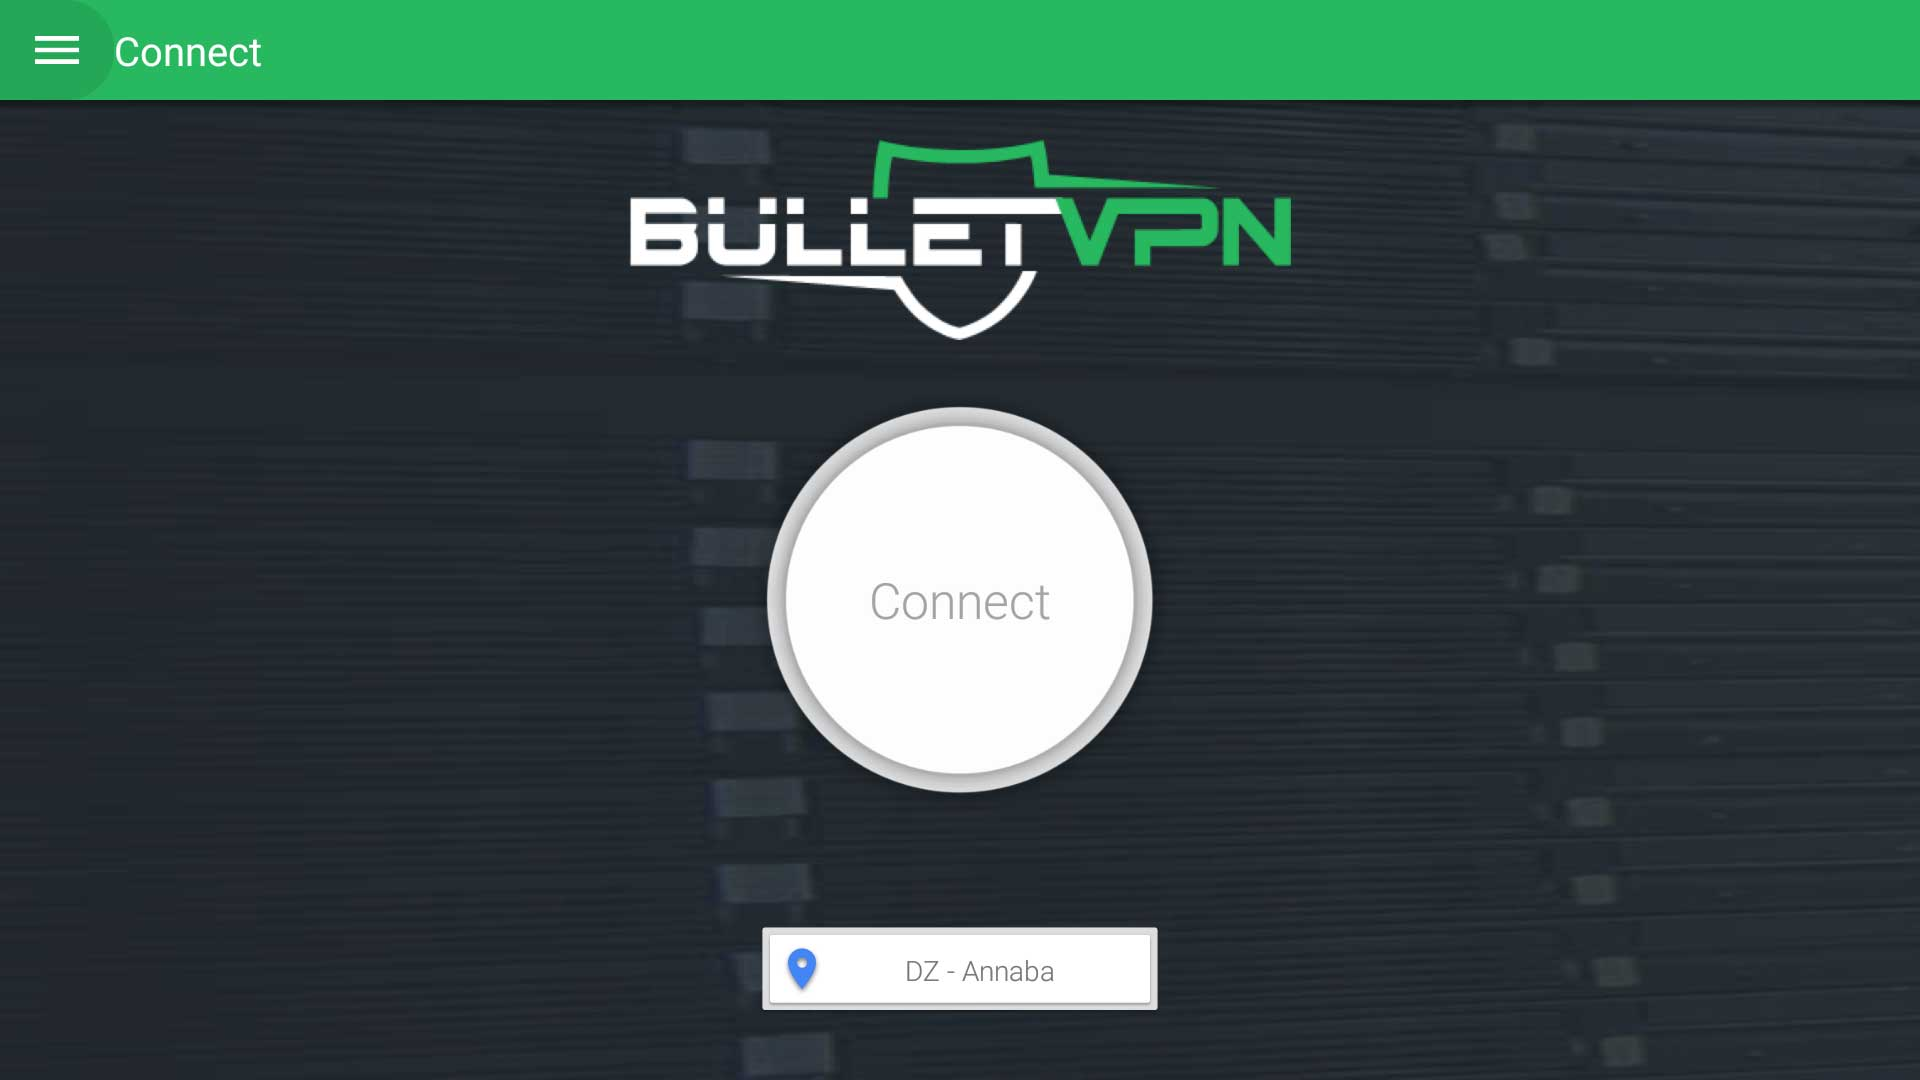 How to Install BulletVPN on FireStick